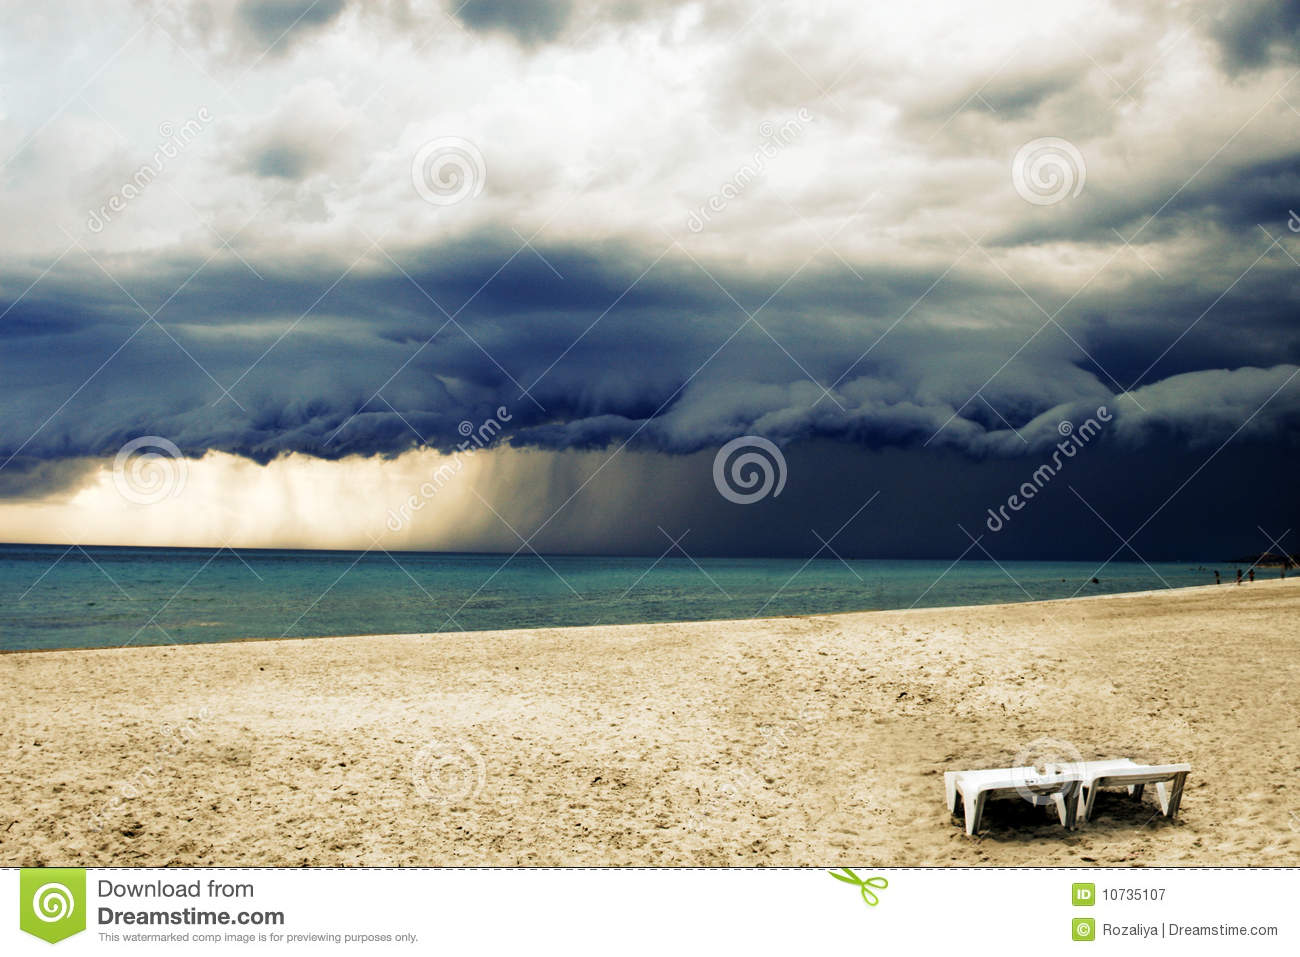 Stormy weather with rain on the beach